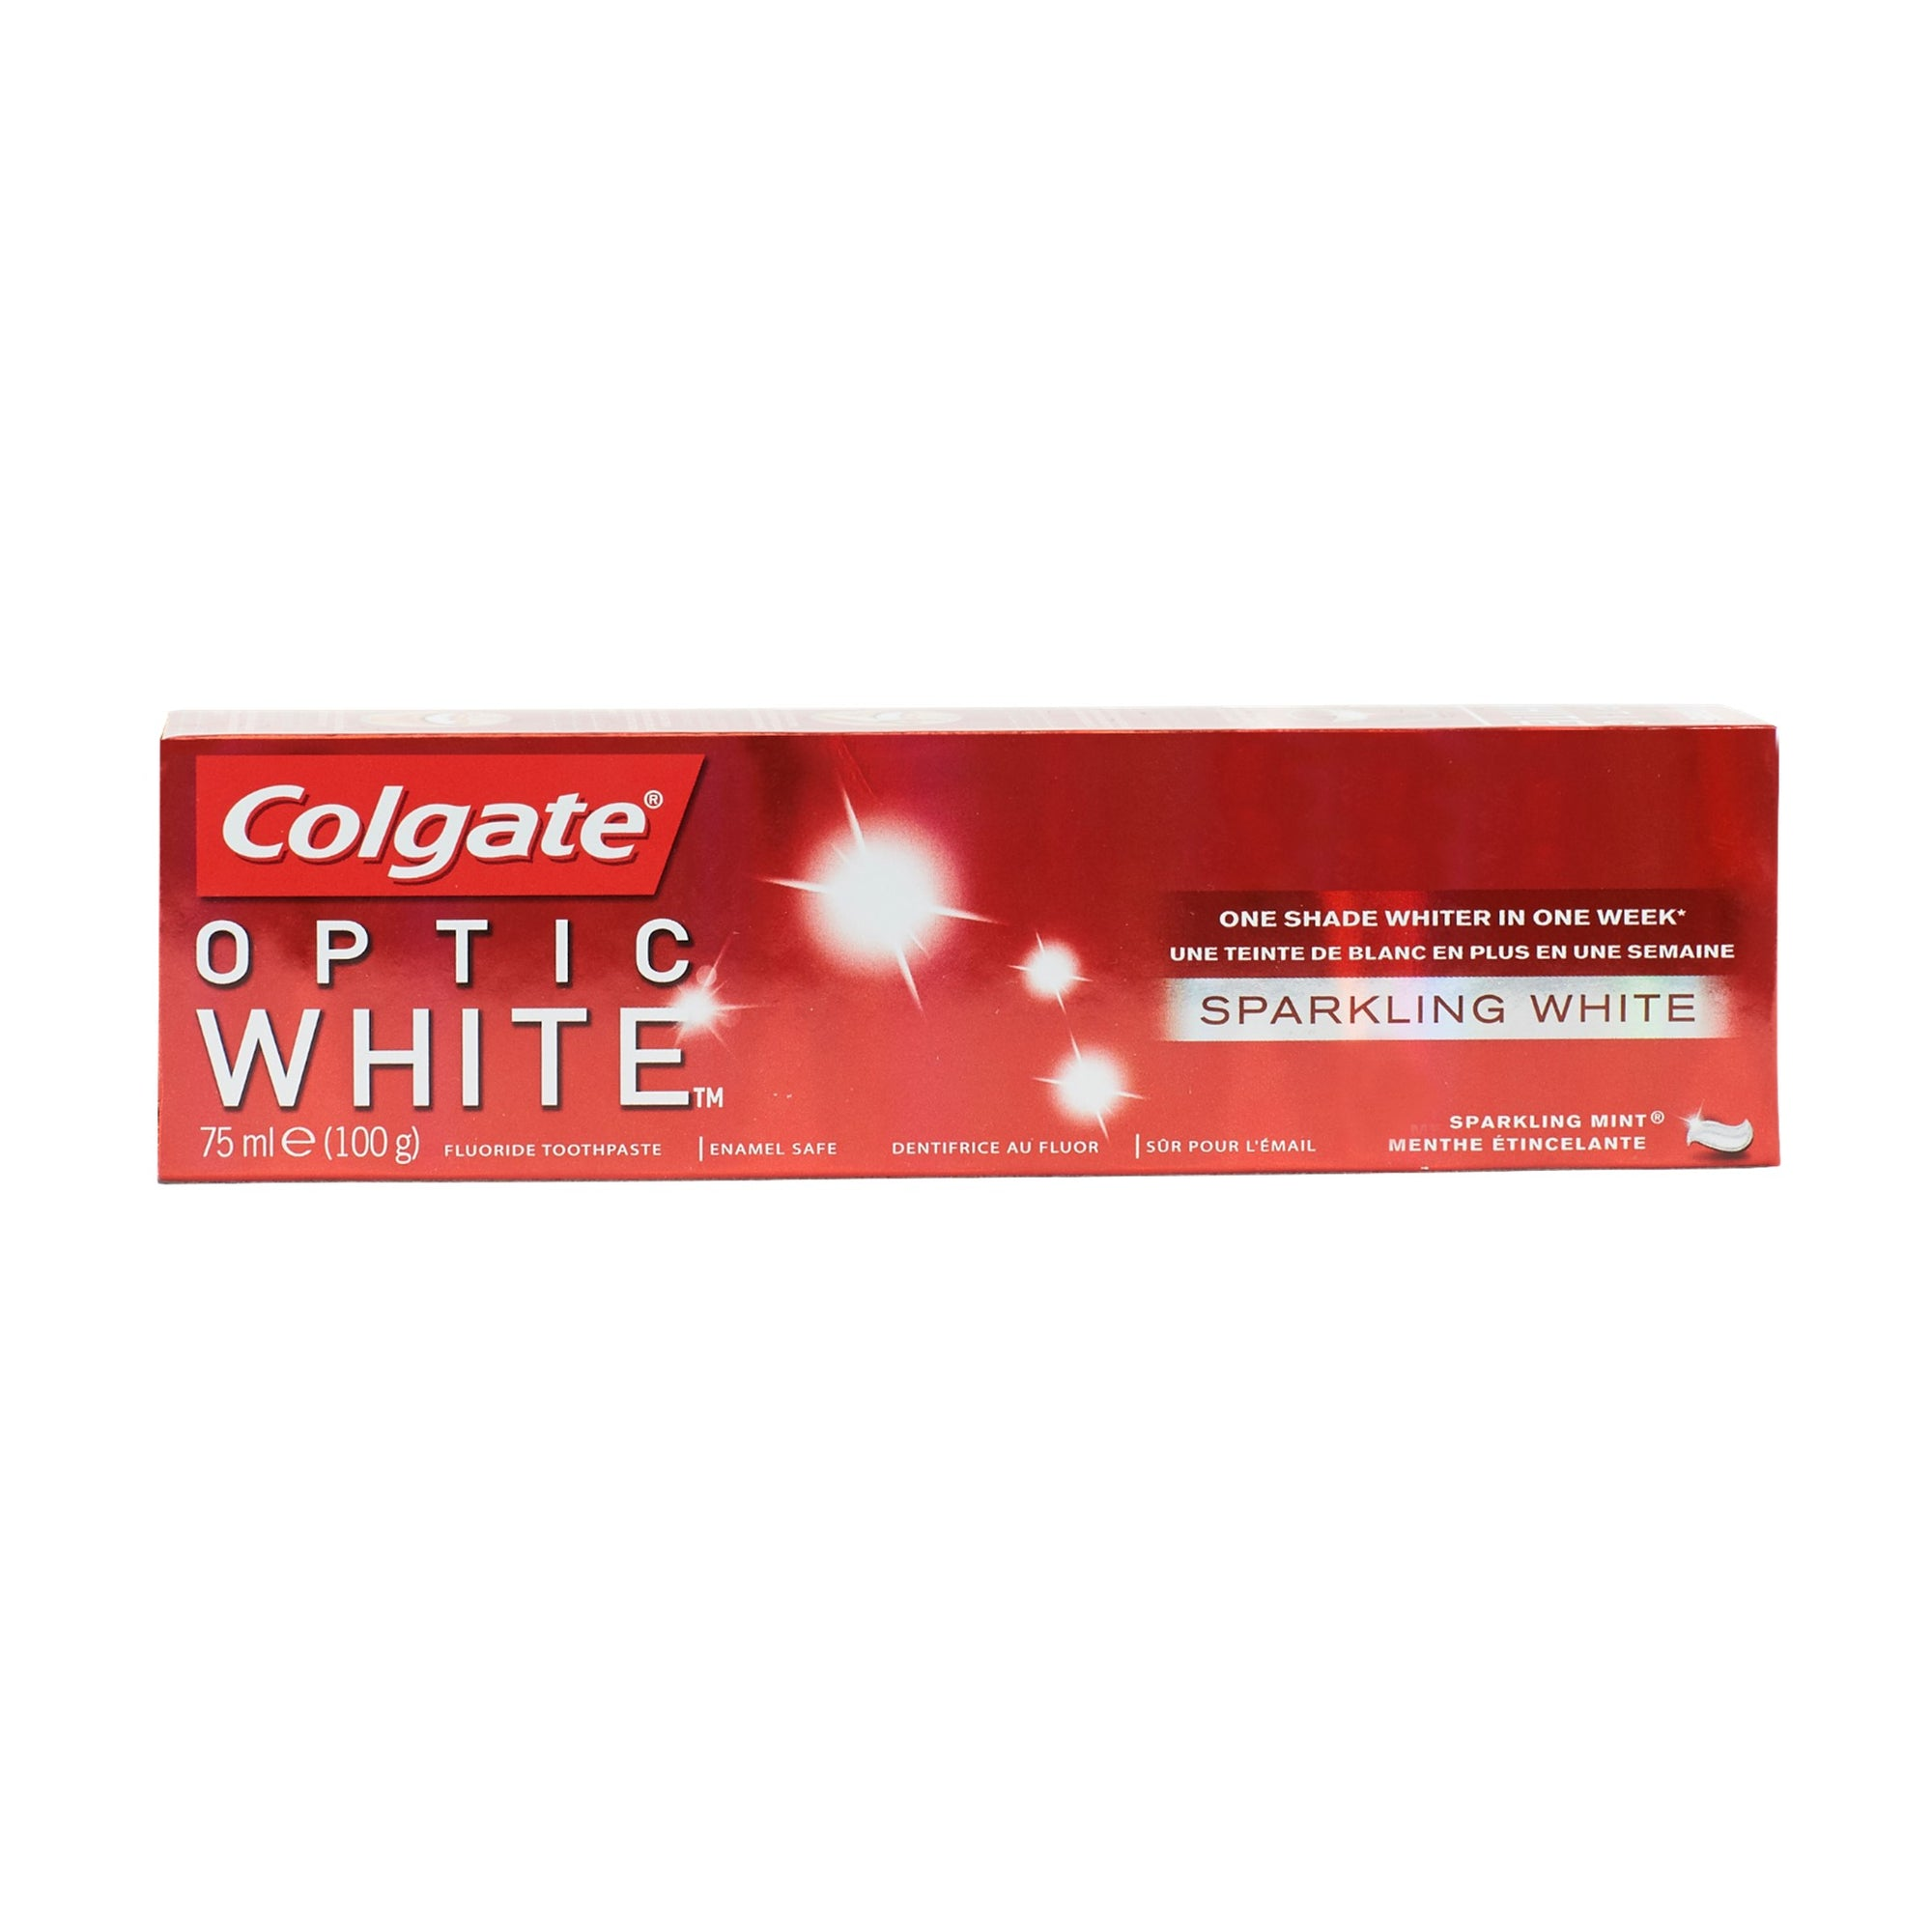 Colgate Optic White Sparkling White Toothpaste 100G